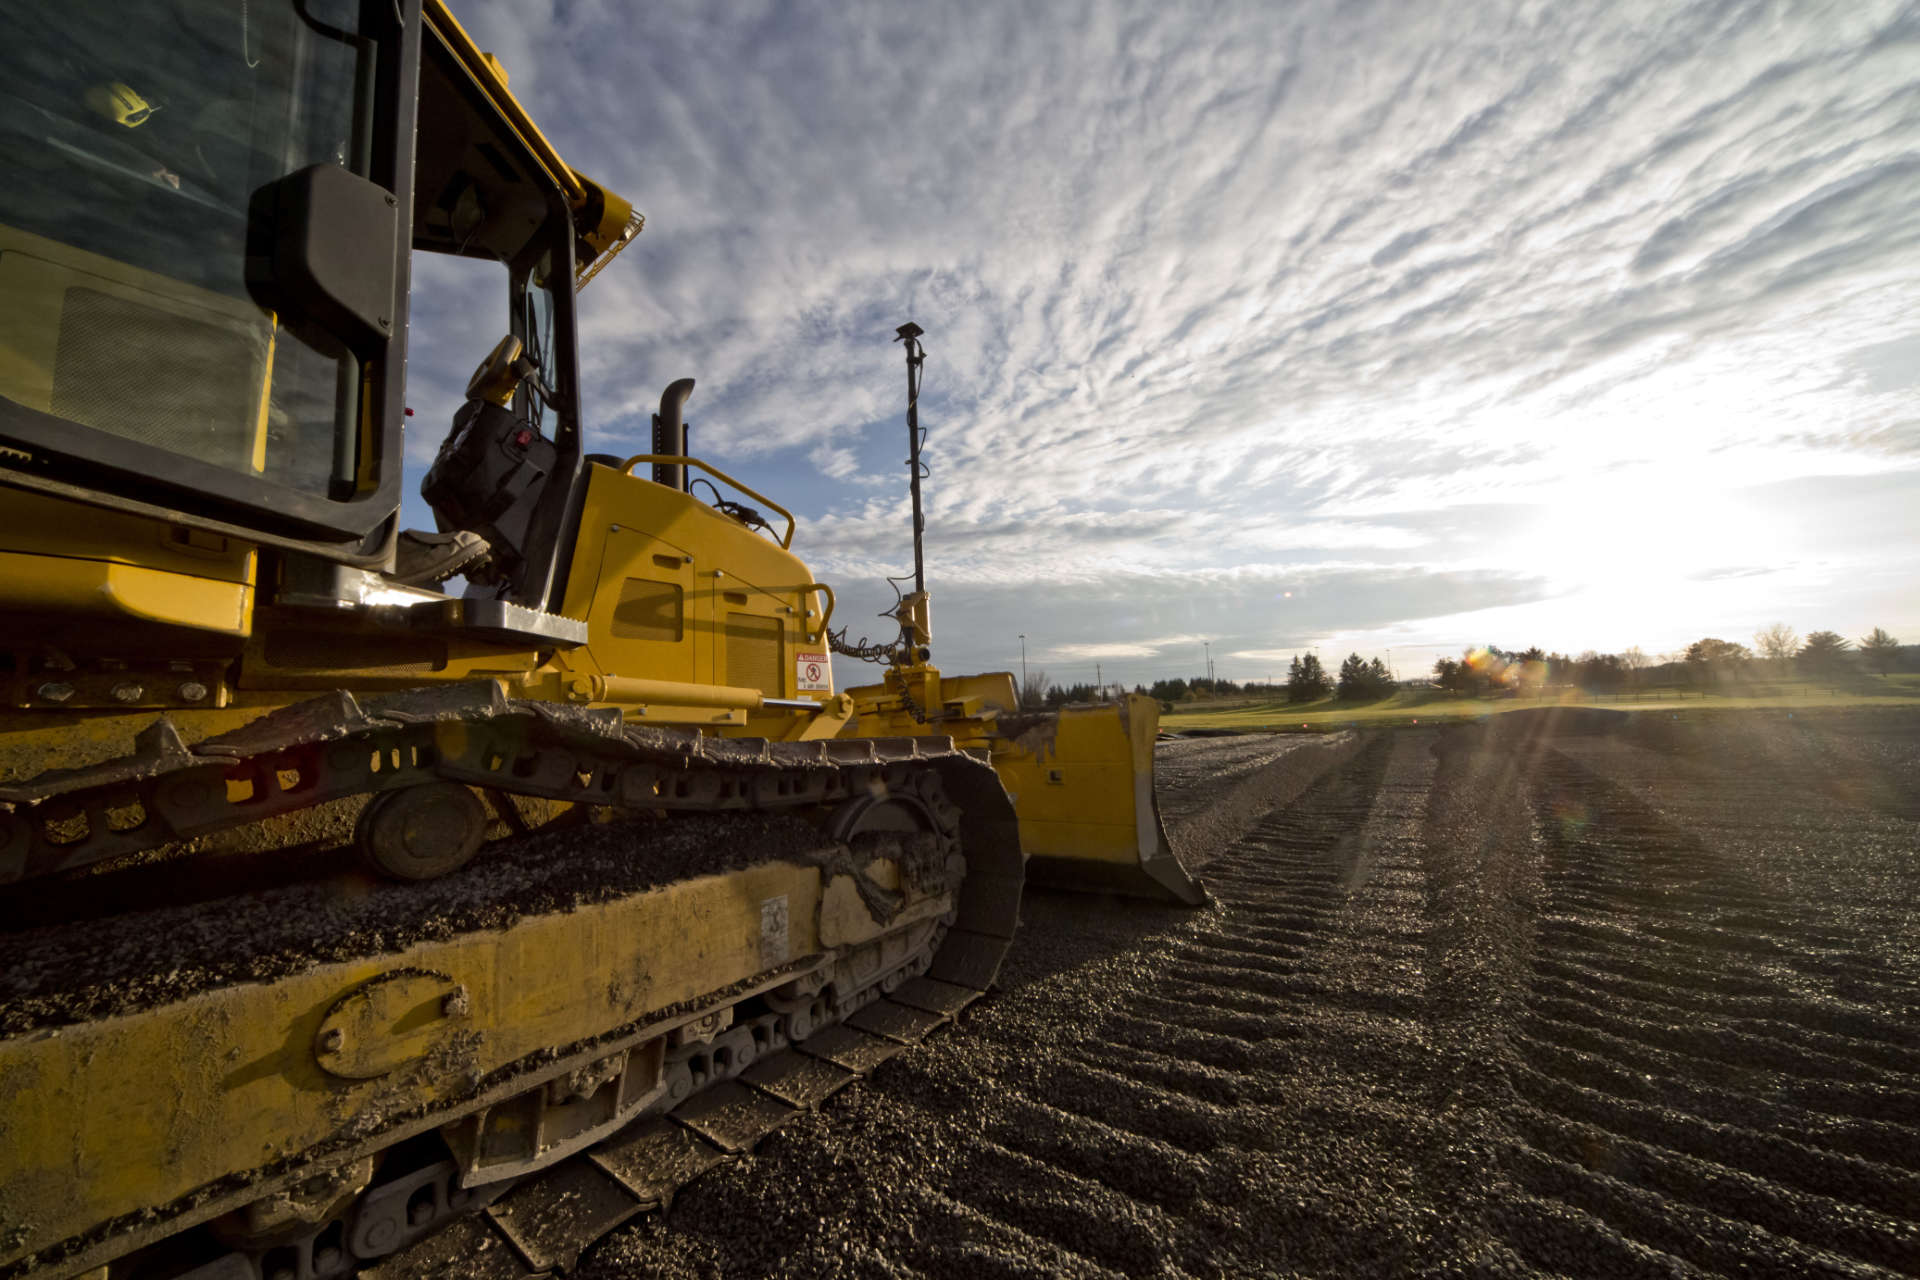 bulldozer in field with sky and clouds behind